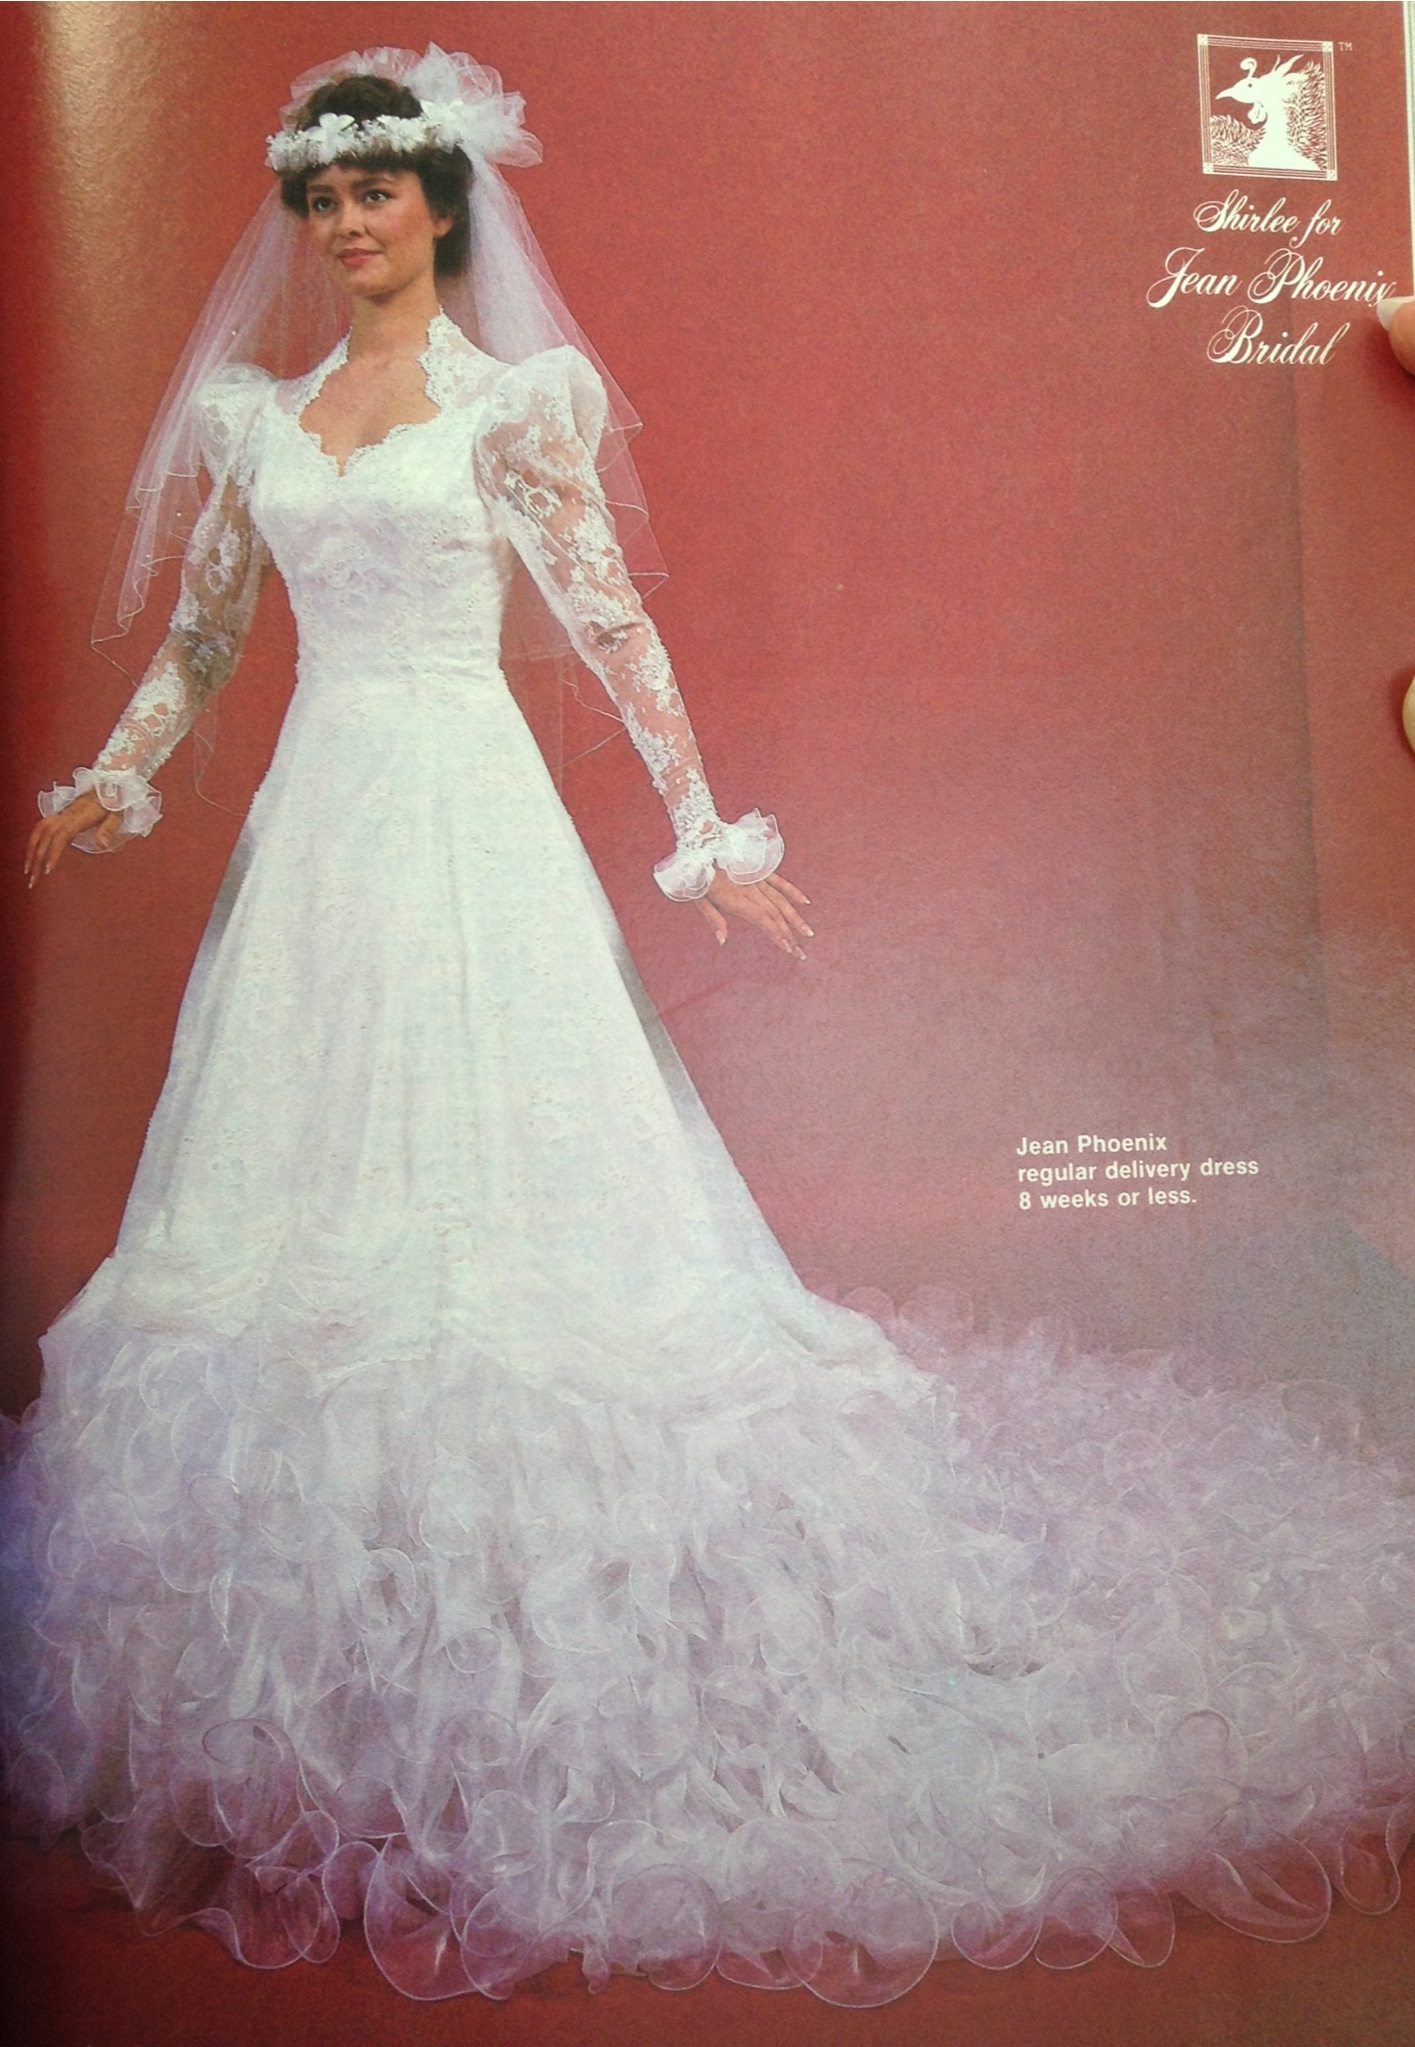 80s fashion exclusive the 11 worst wedding gowns bridesmaid 4 junglespirit Choice Image